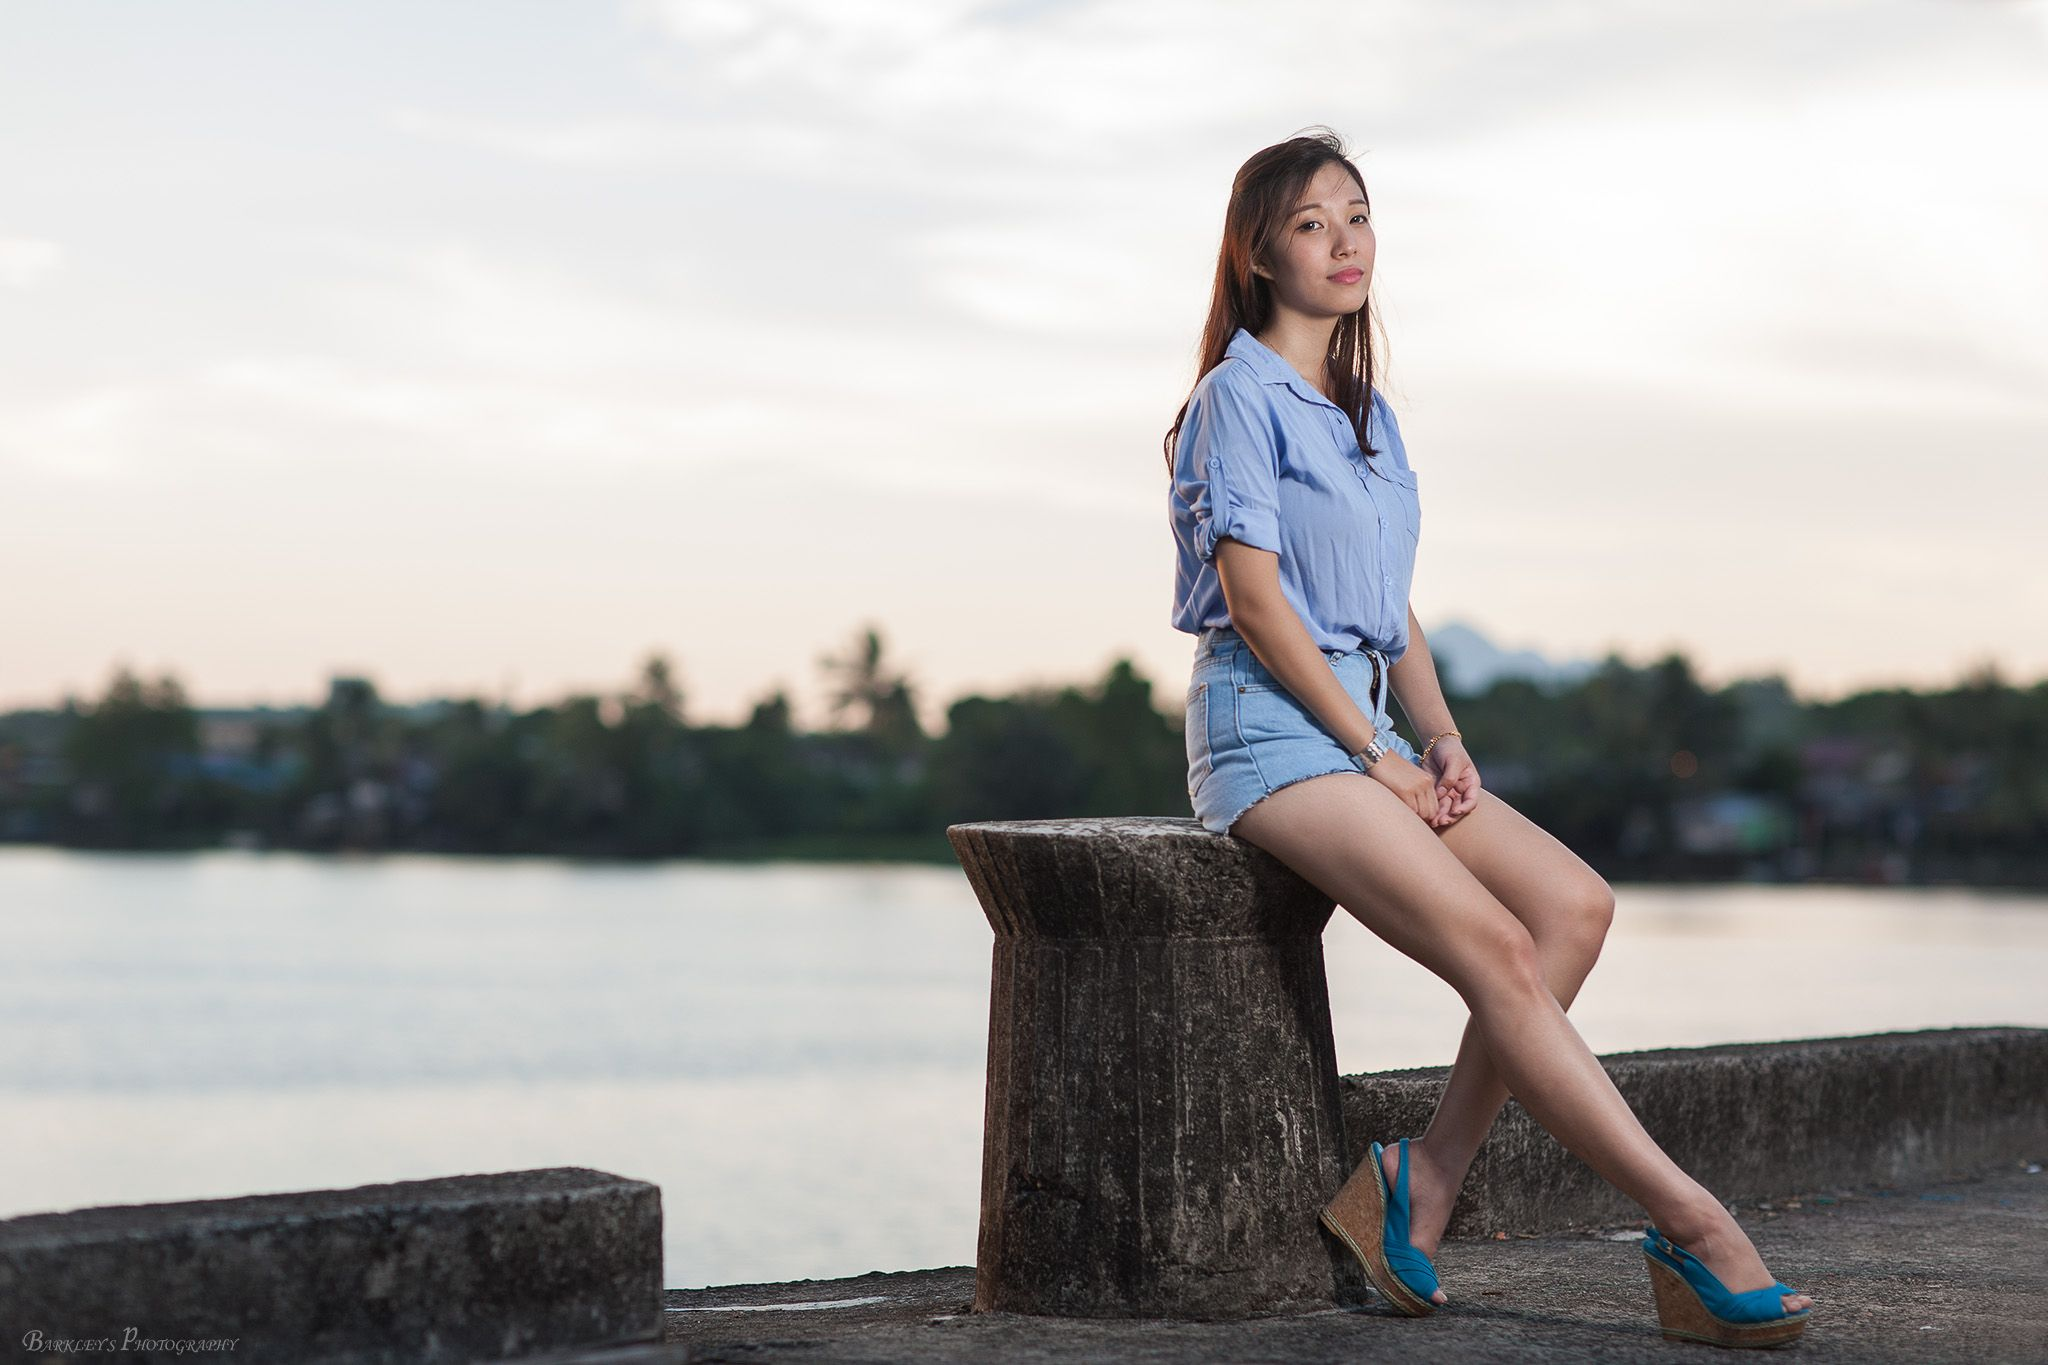 Shutter: 1/200sec, Aperture: F2.2, ISO: 50, Focal Length: 85mm, Strobe: Beauty dish with Off shoes Flash (Yongnuo YN460) to the right of talent